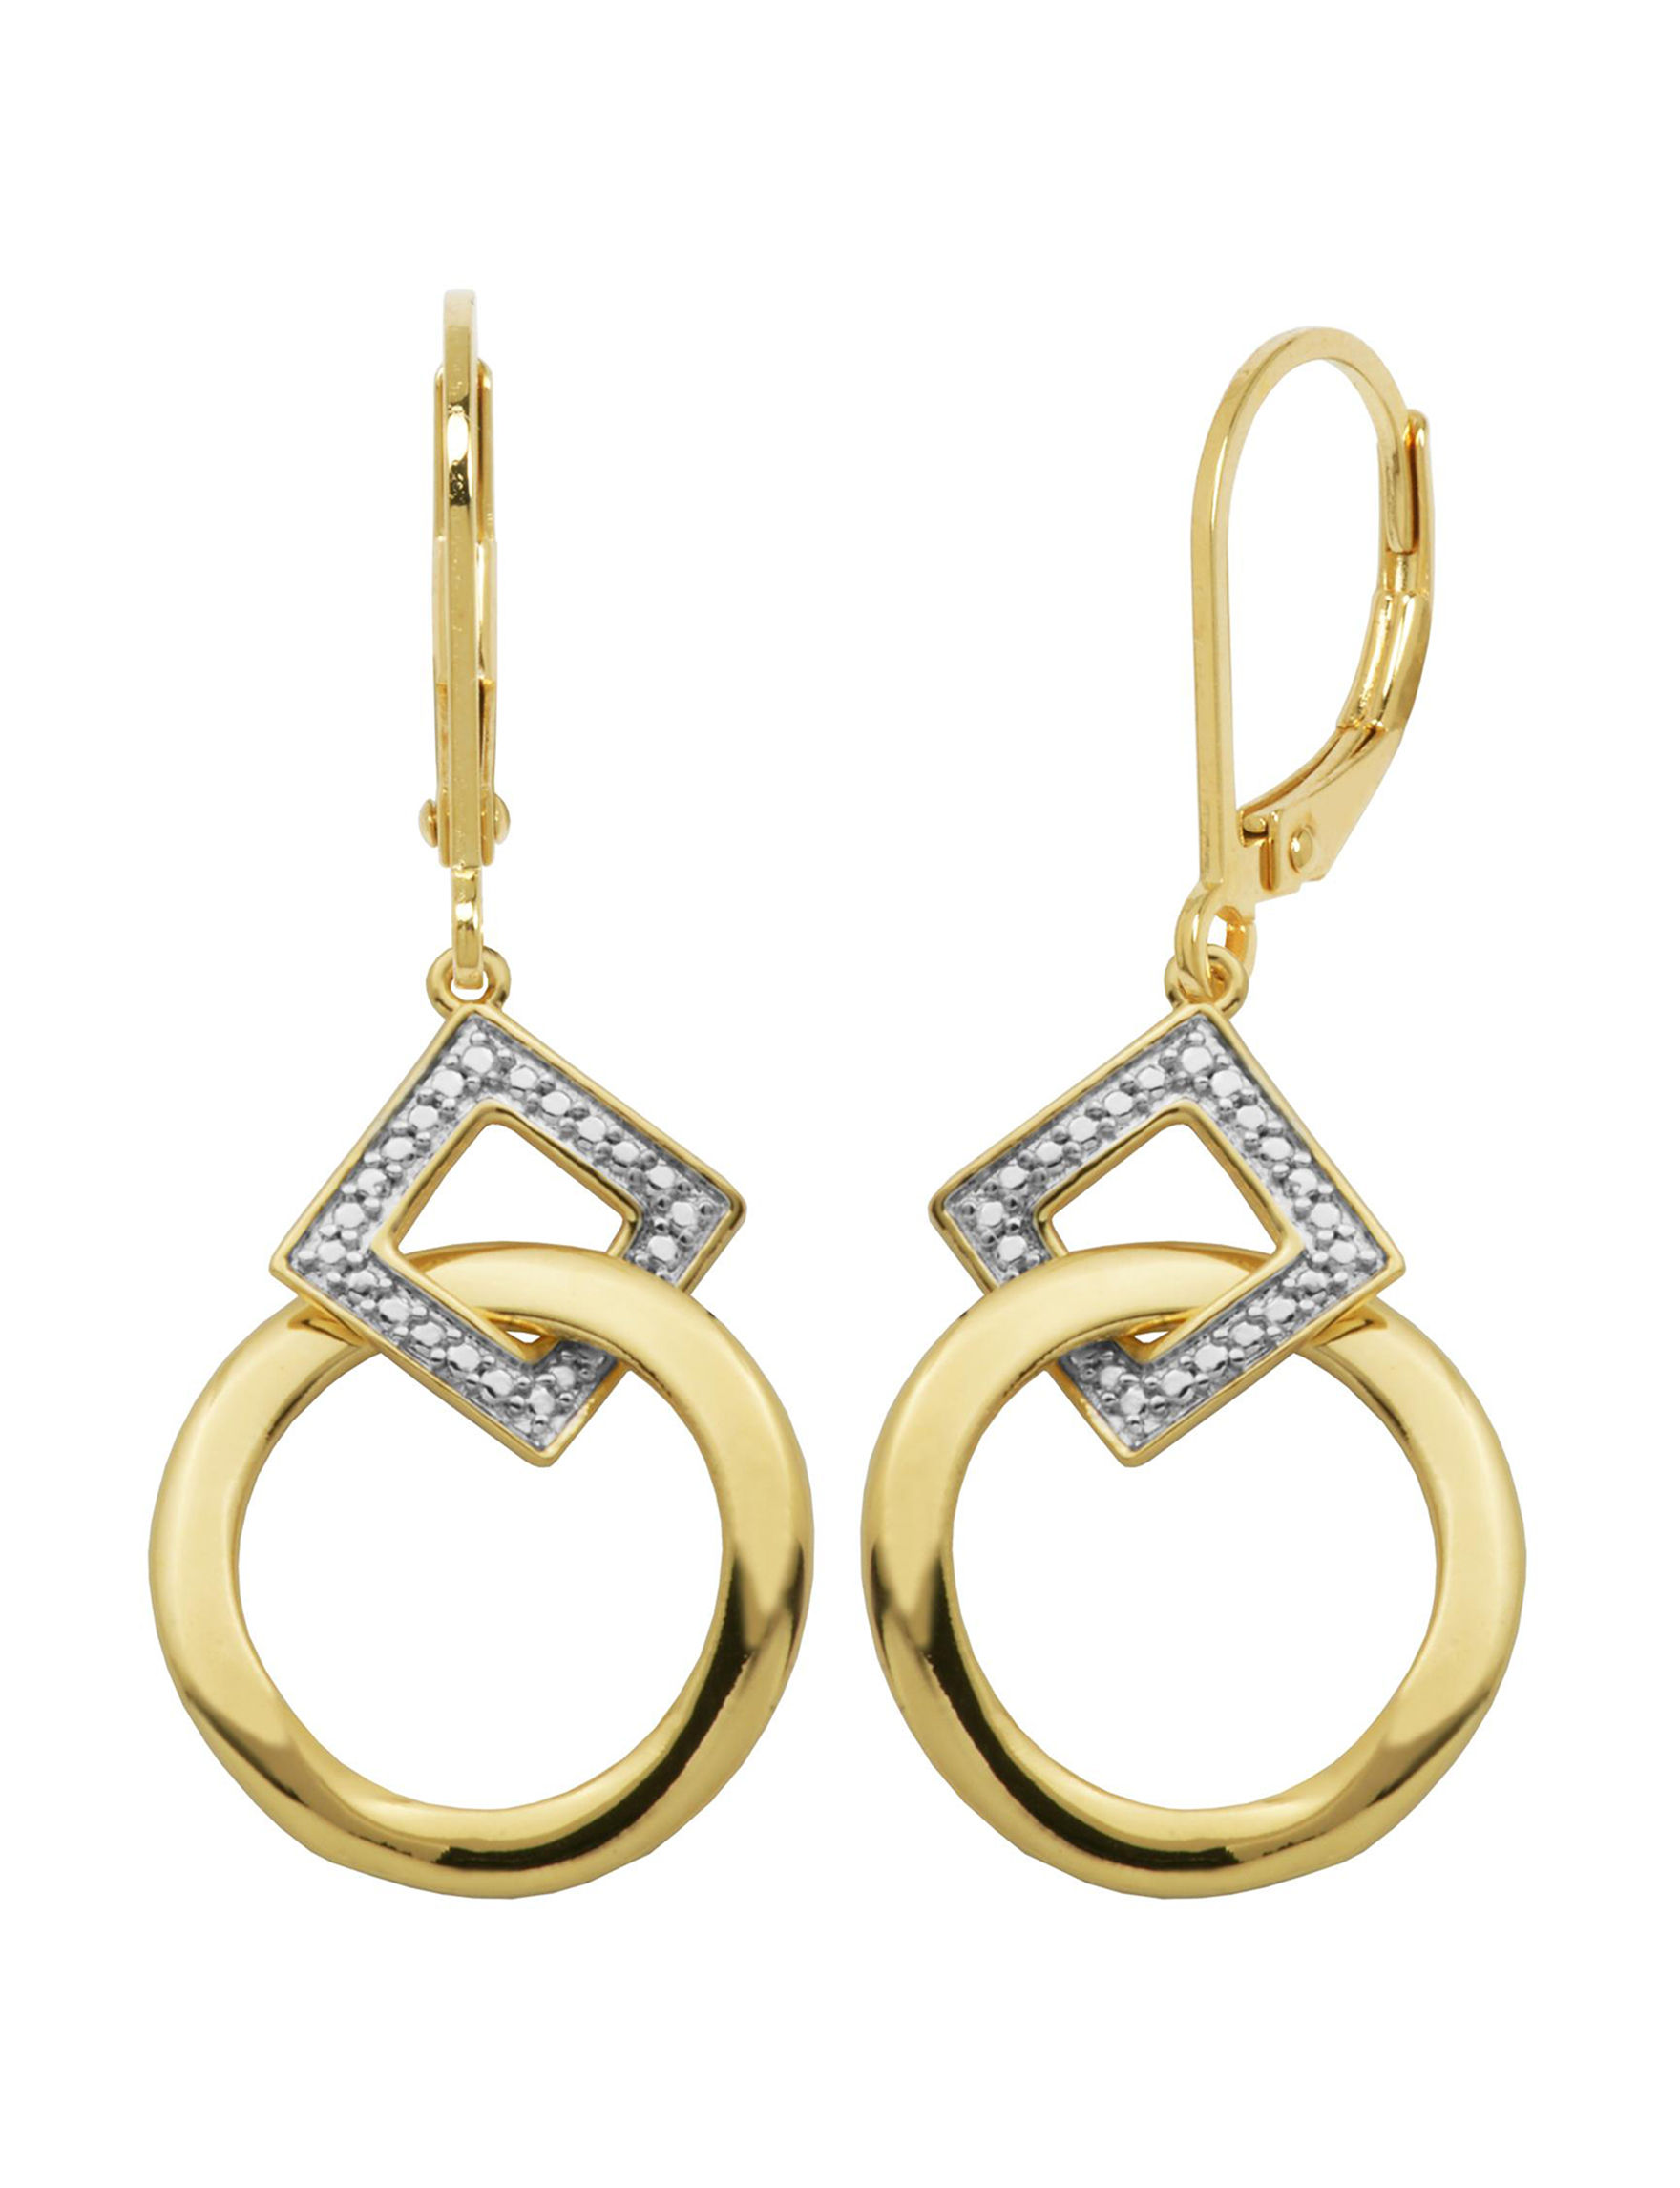 PAJ INC. Diamonds Drops Earrings Fine Jewelry